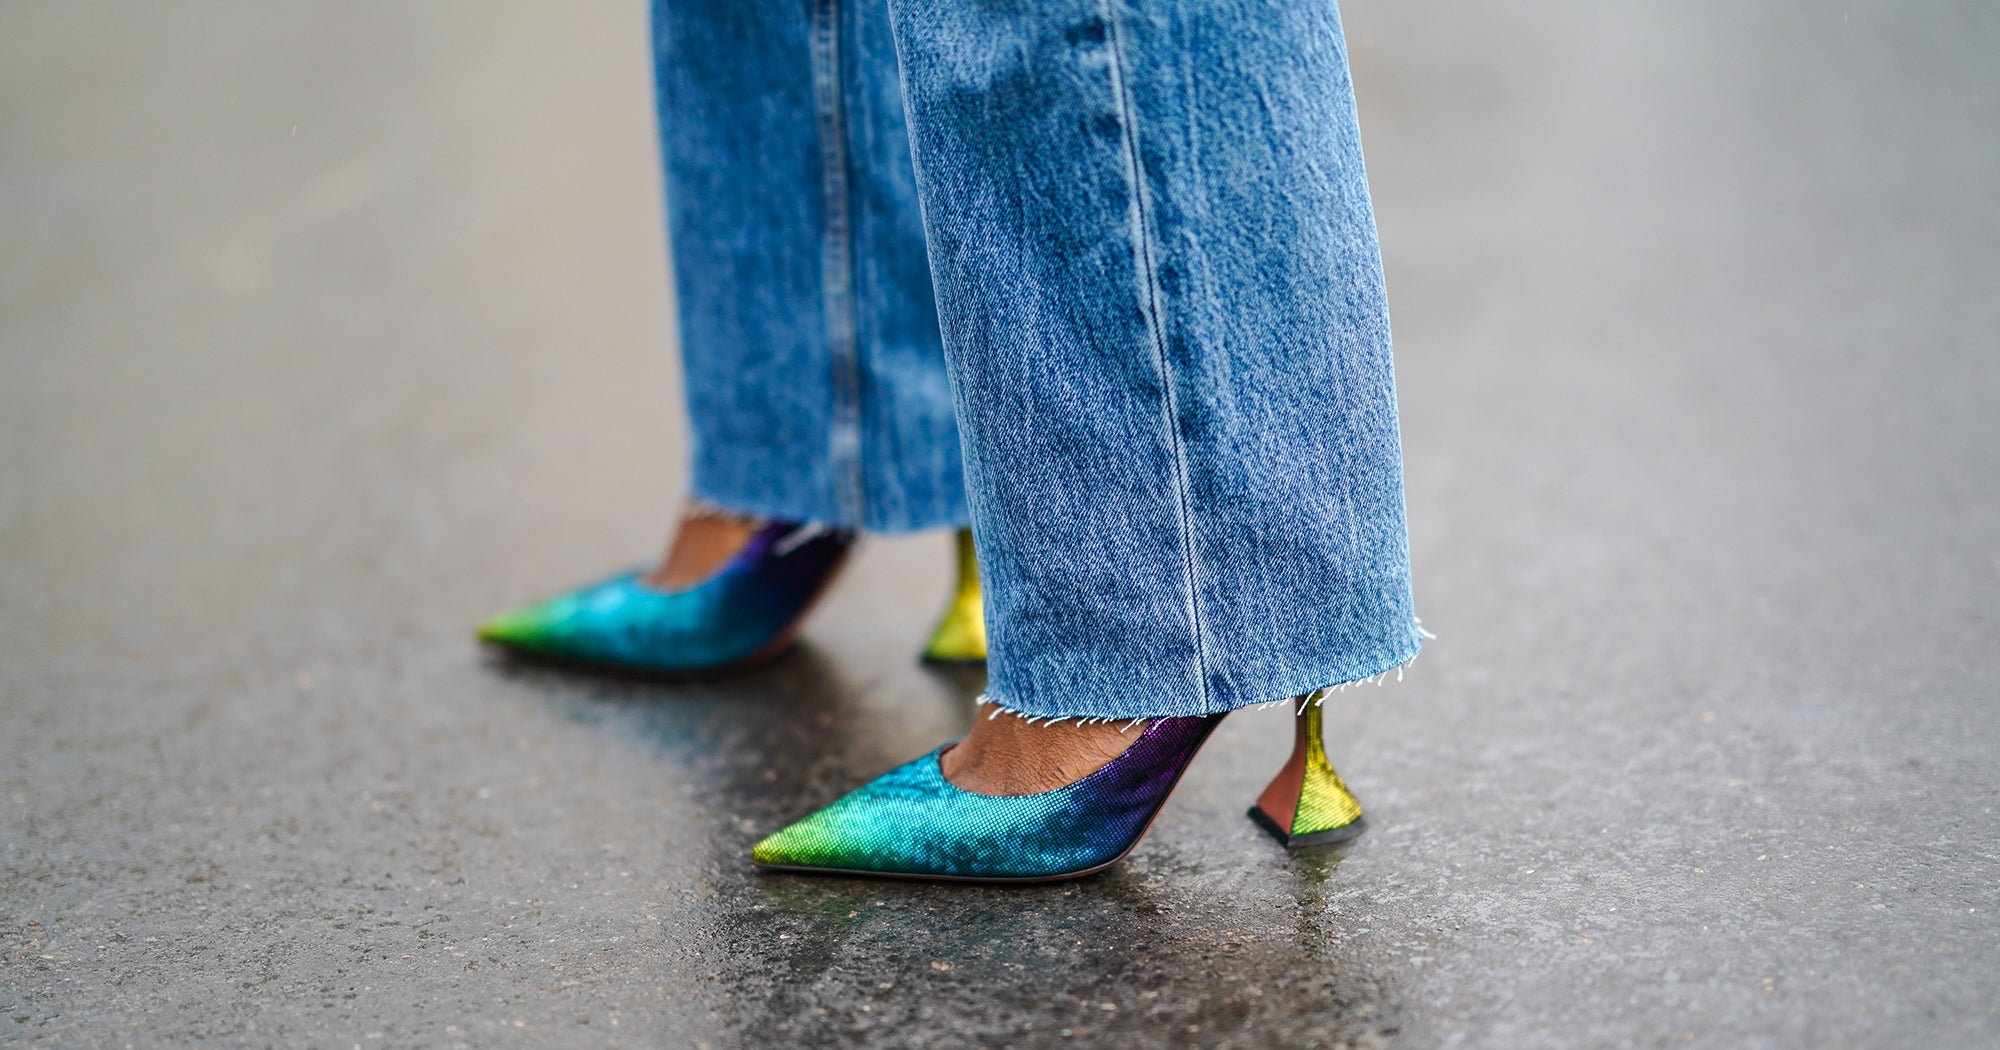 www.refinery29.com: Now That Skinny Jeans Are Out, What Shoes Do You Wear With Non-Skinny Jeans?